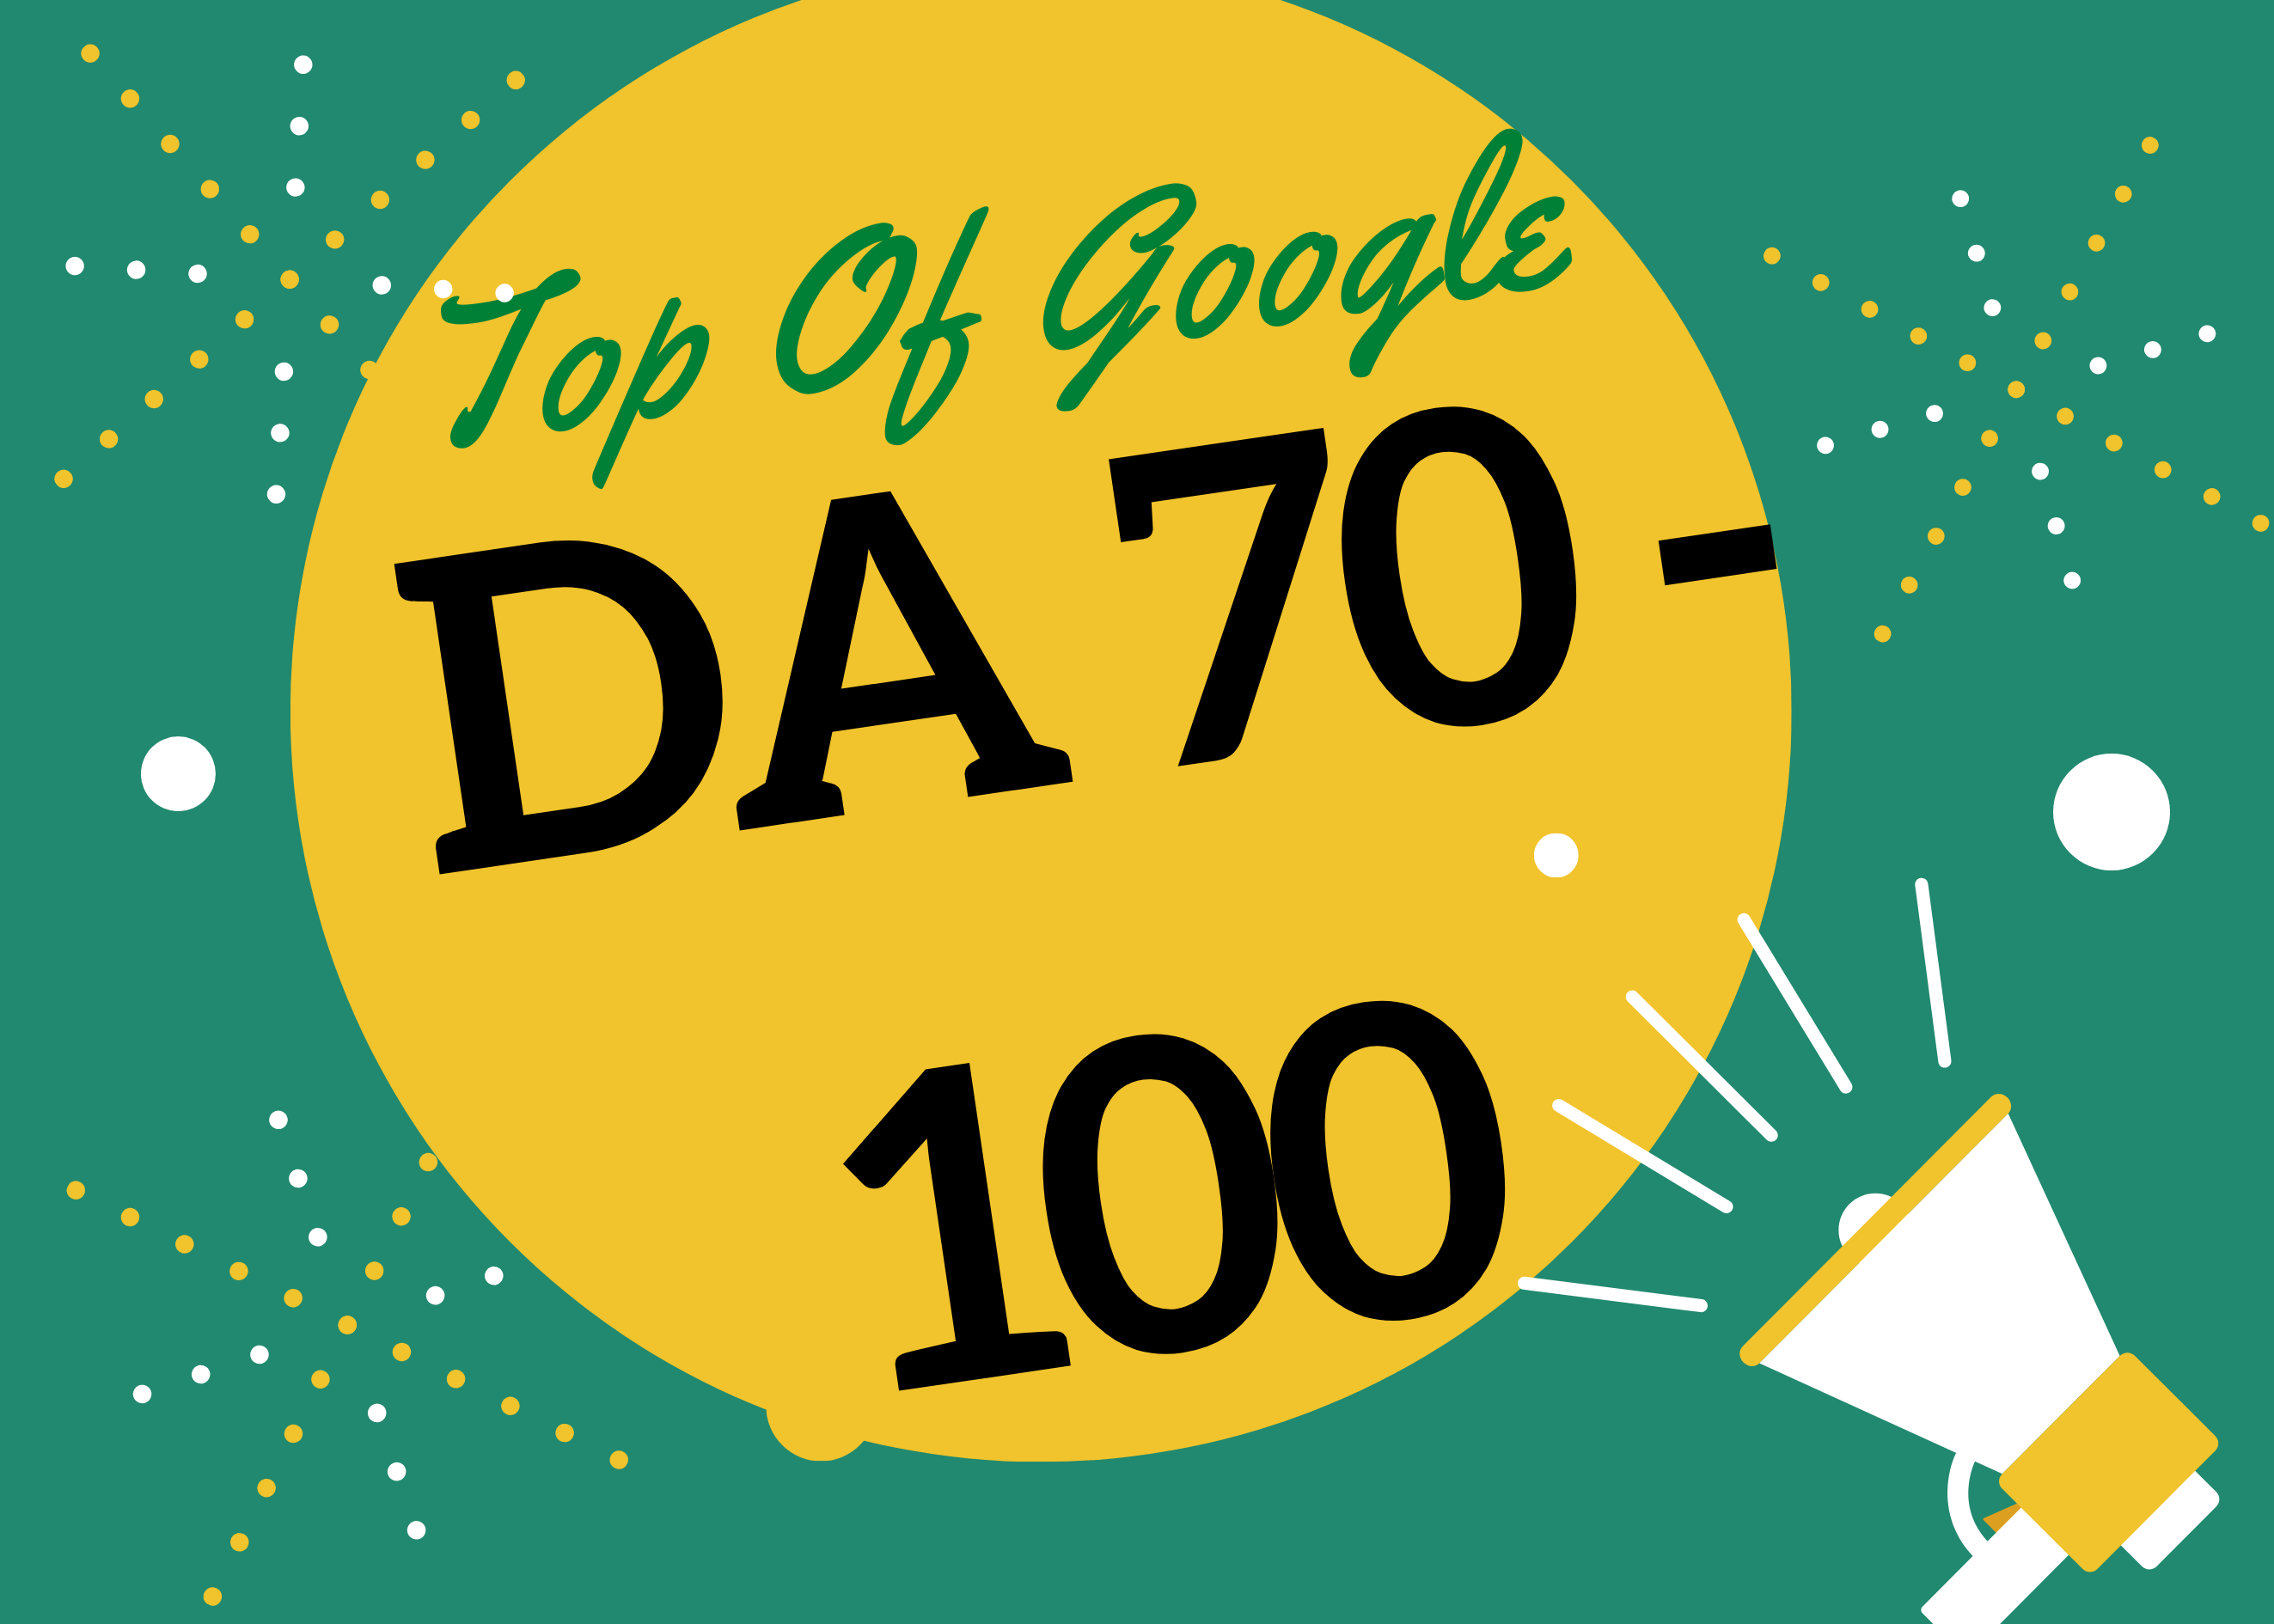 Boost You Ranking With 10 PBN Quality Links from DA 70-DA 100 Sites